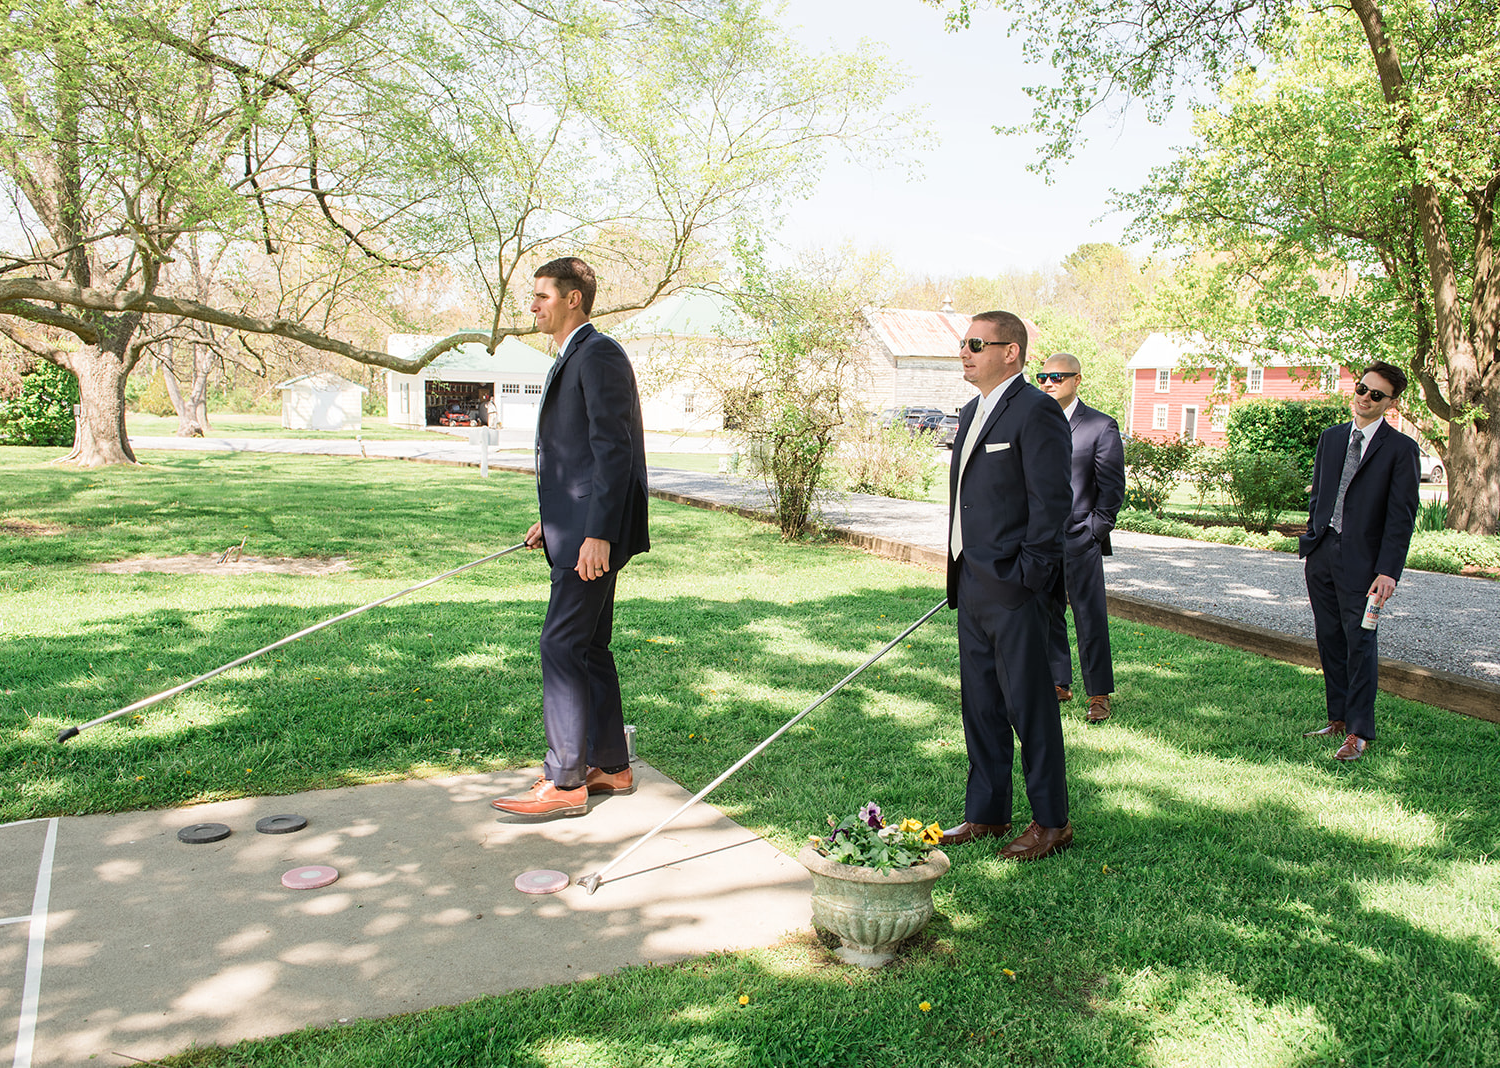 groomsmen playing outside before the wedding